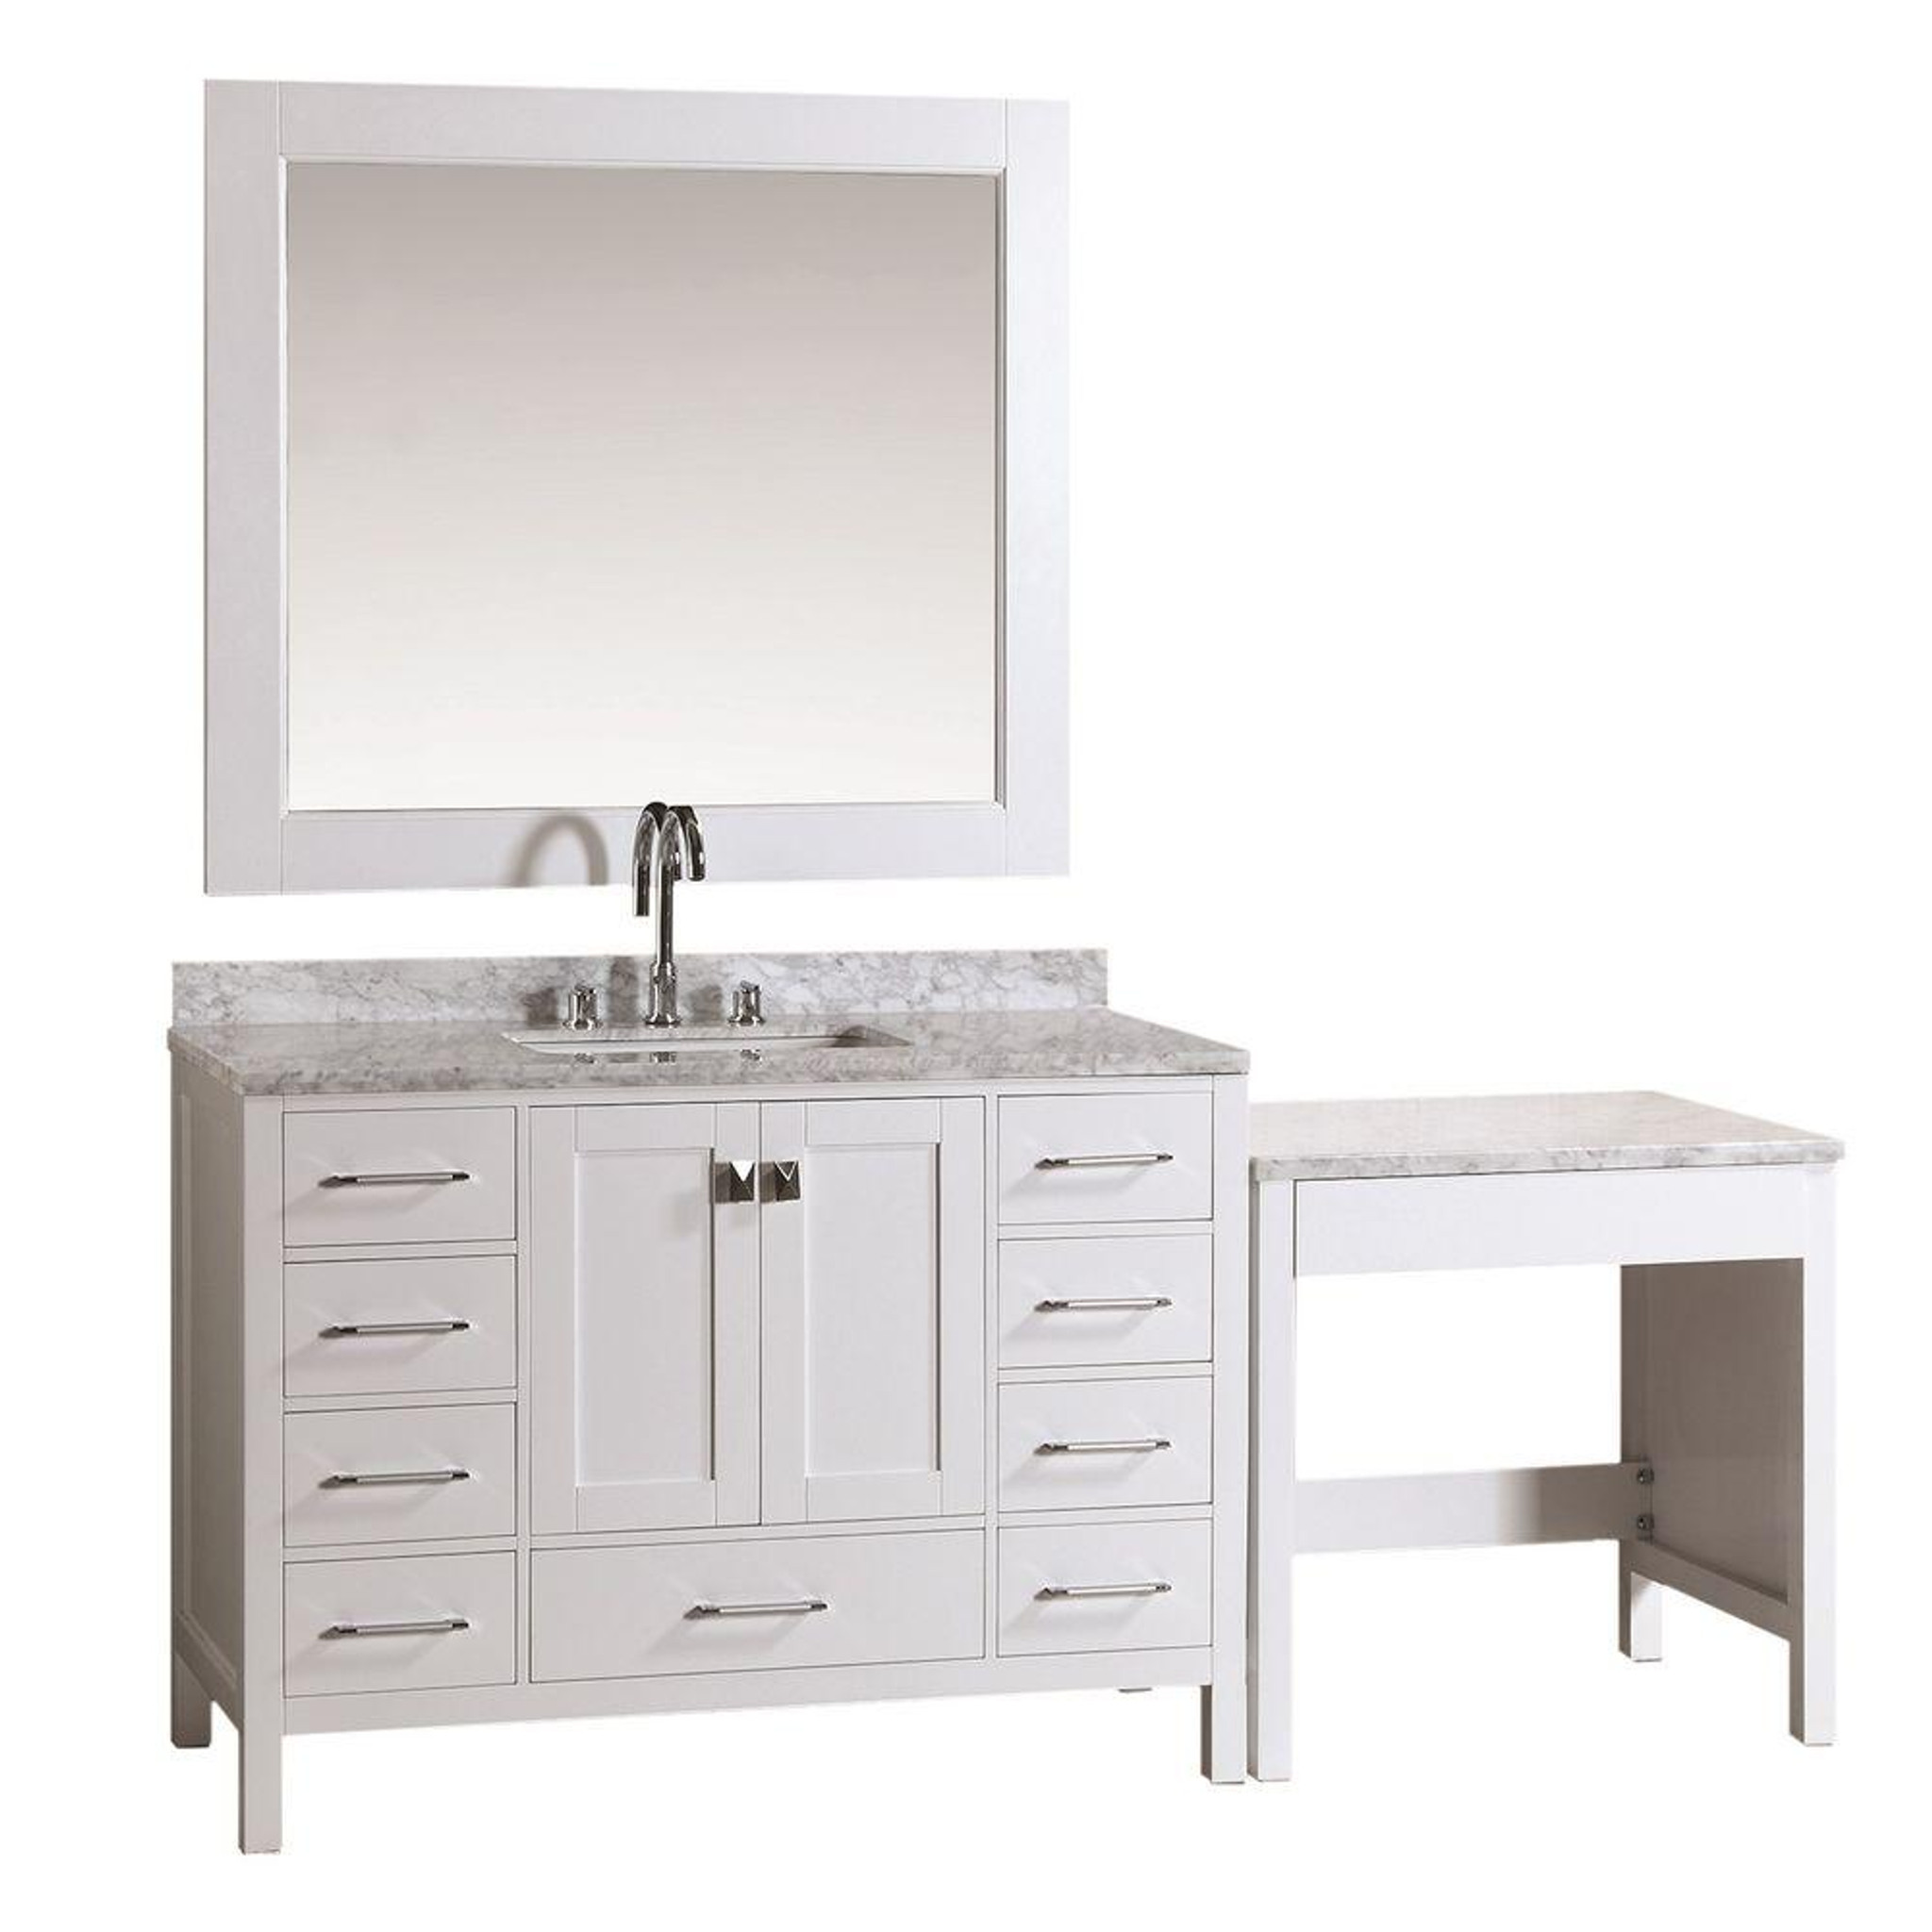 Design Element Dec082c W Mut W London 48 Single Sink Vanity Set In White Finish With One Make Up Table In White Finish